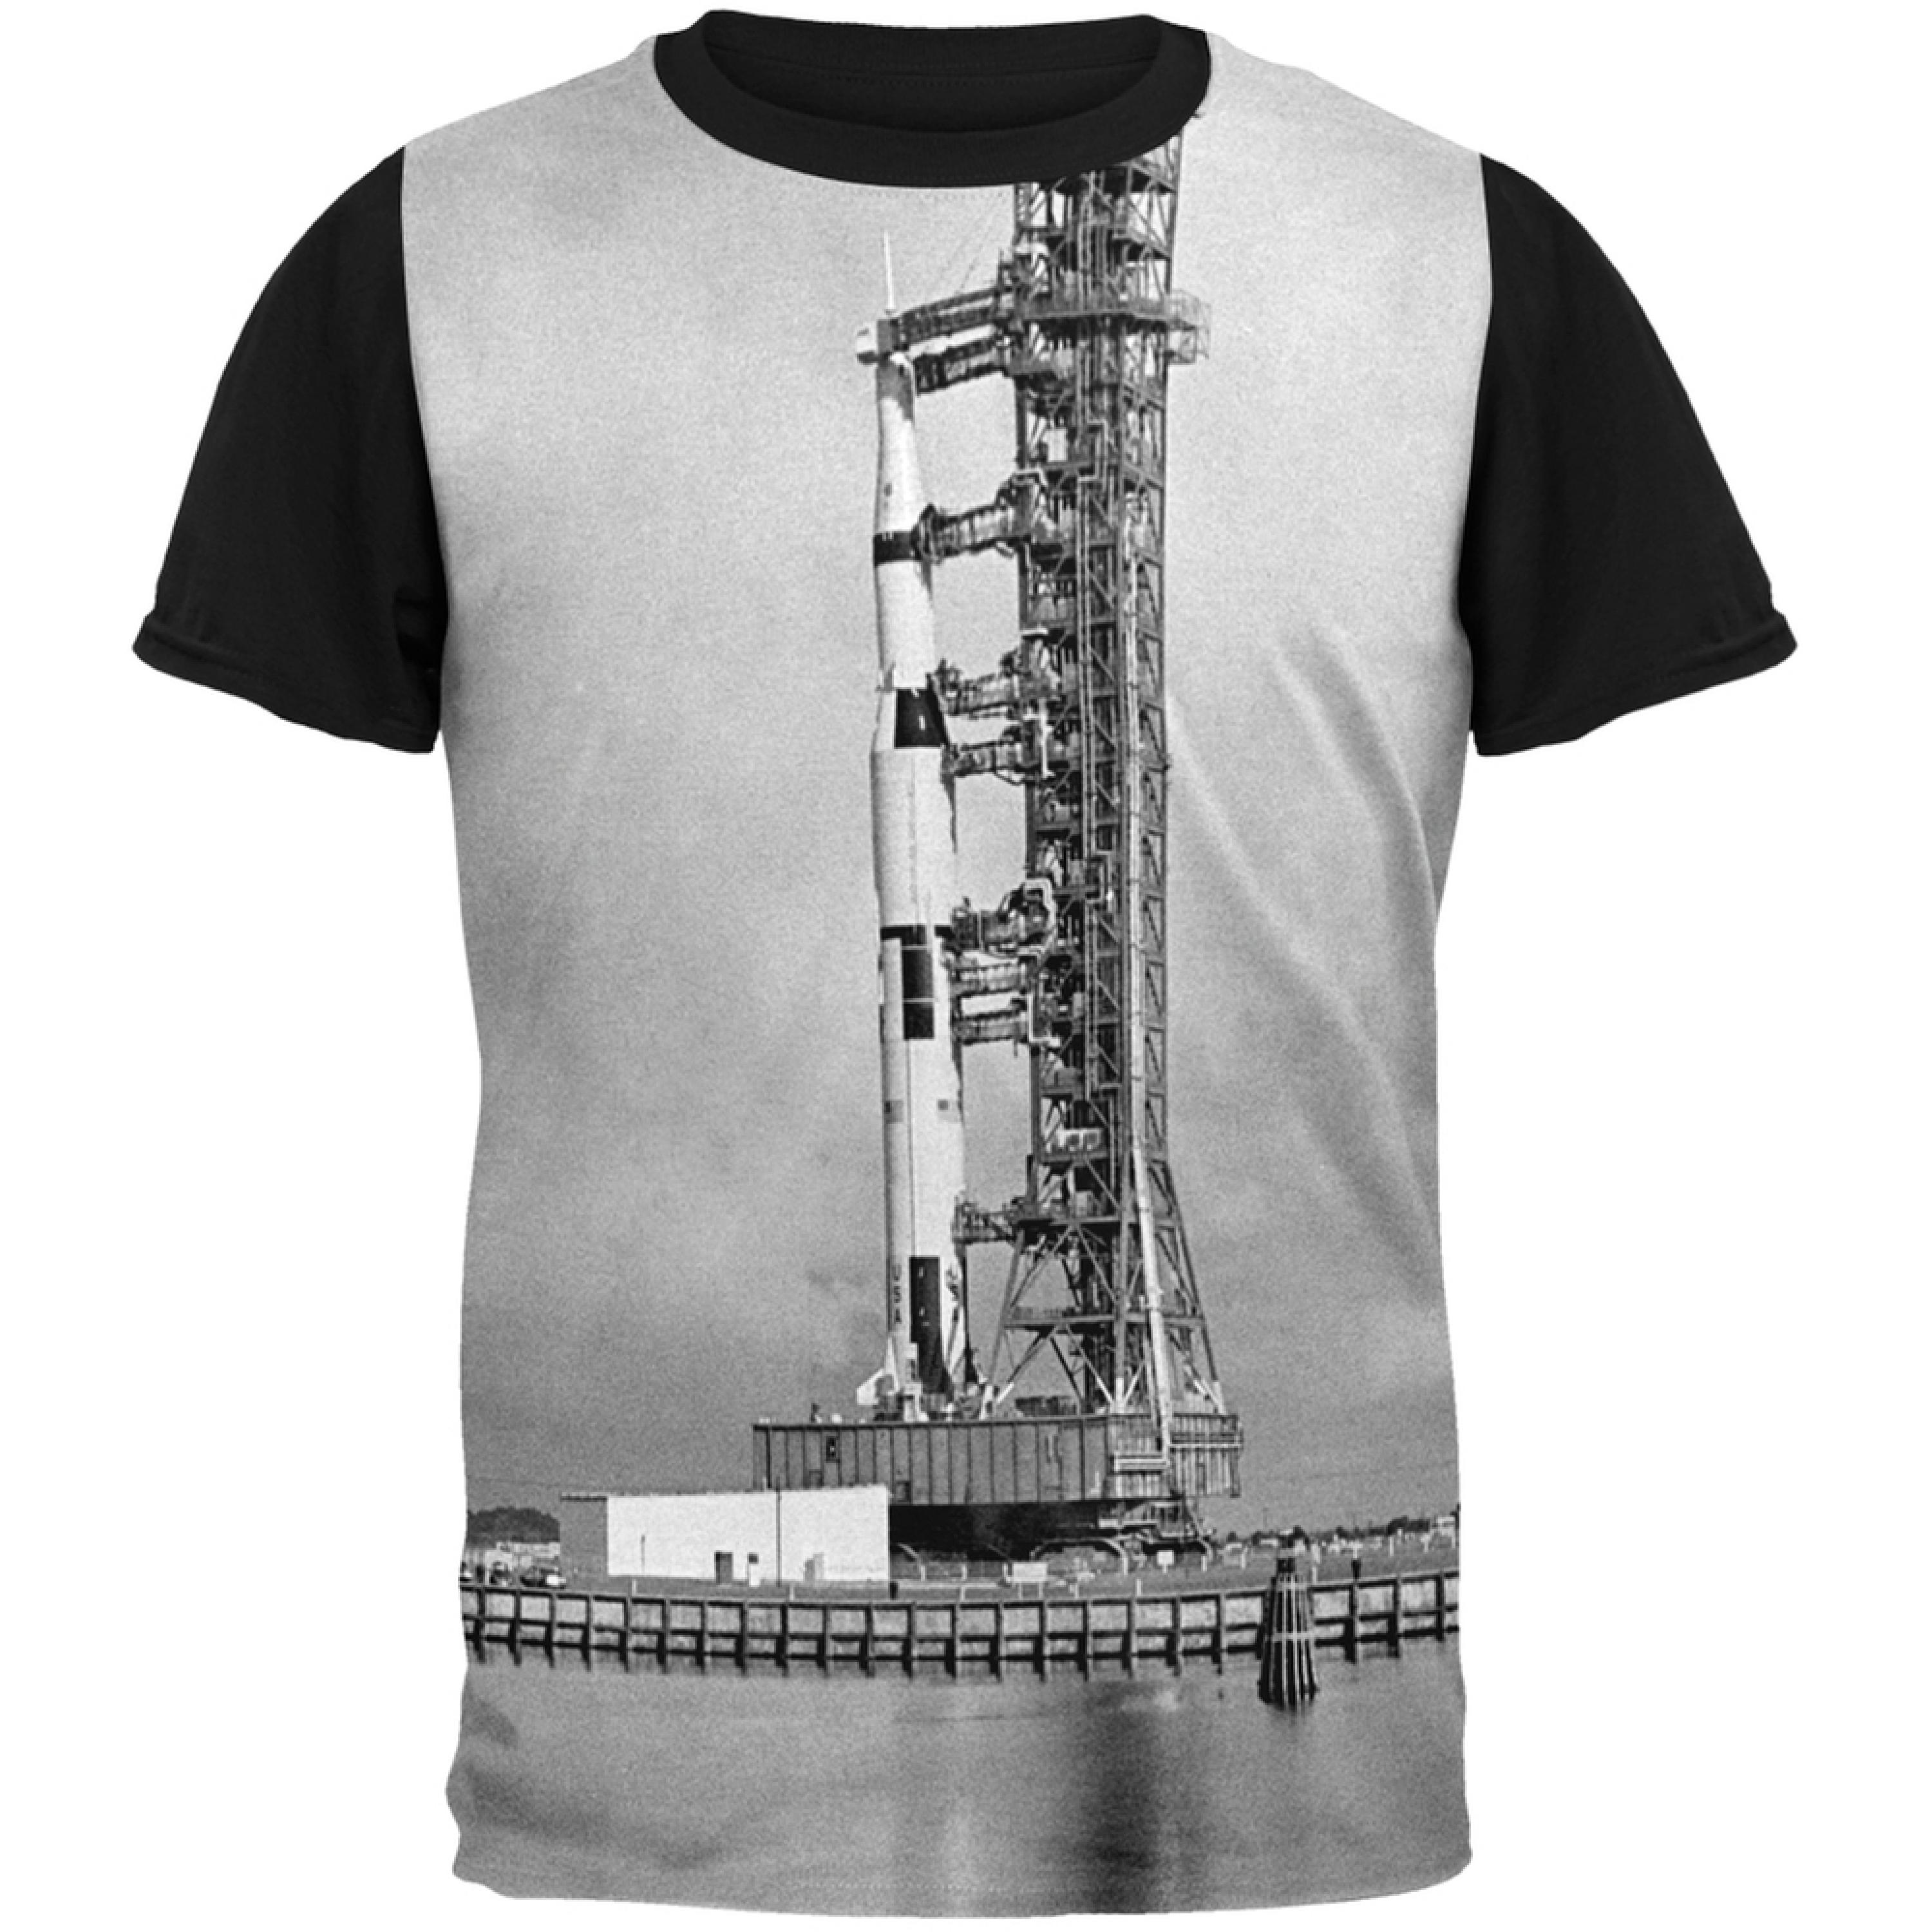 Apollo 8 Saturn 5 Rocket Black and White Adult Black Back T-Shirt